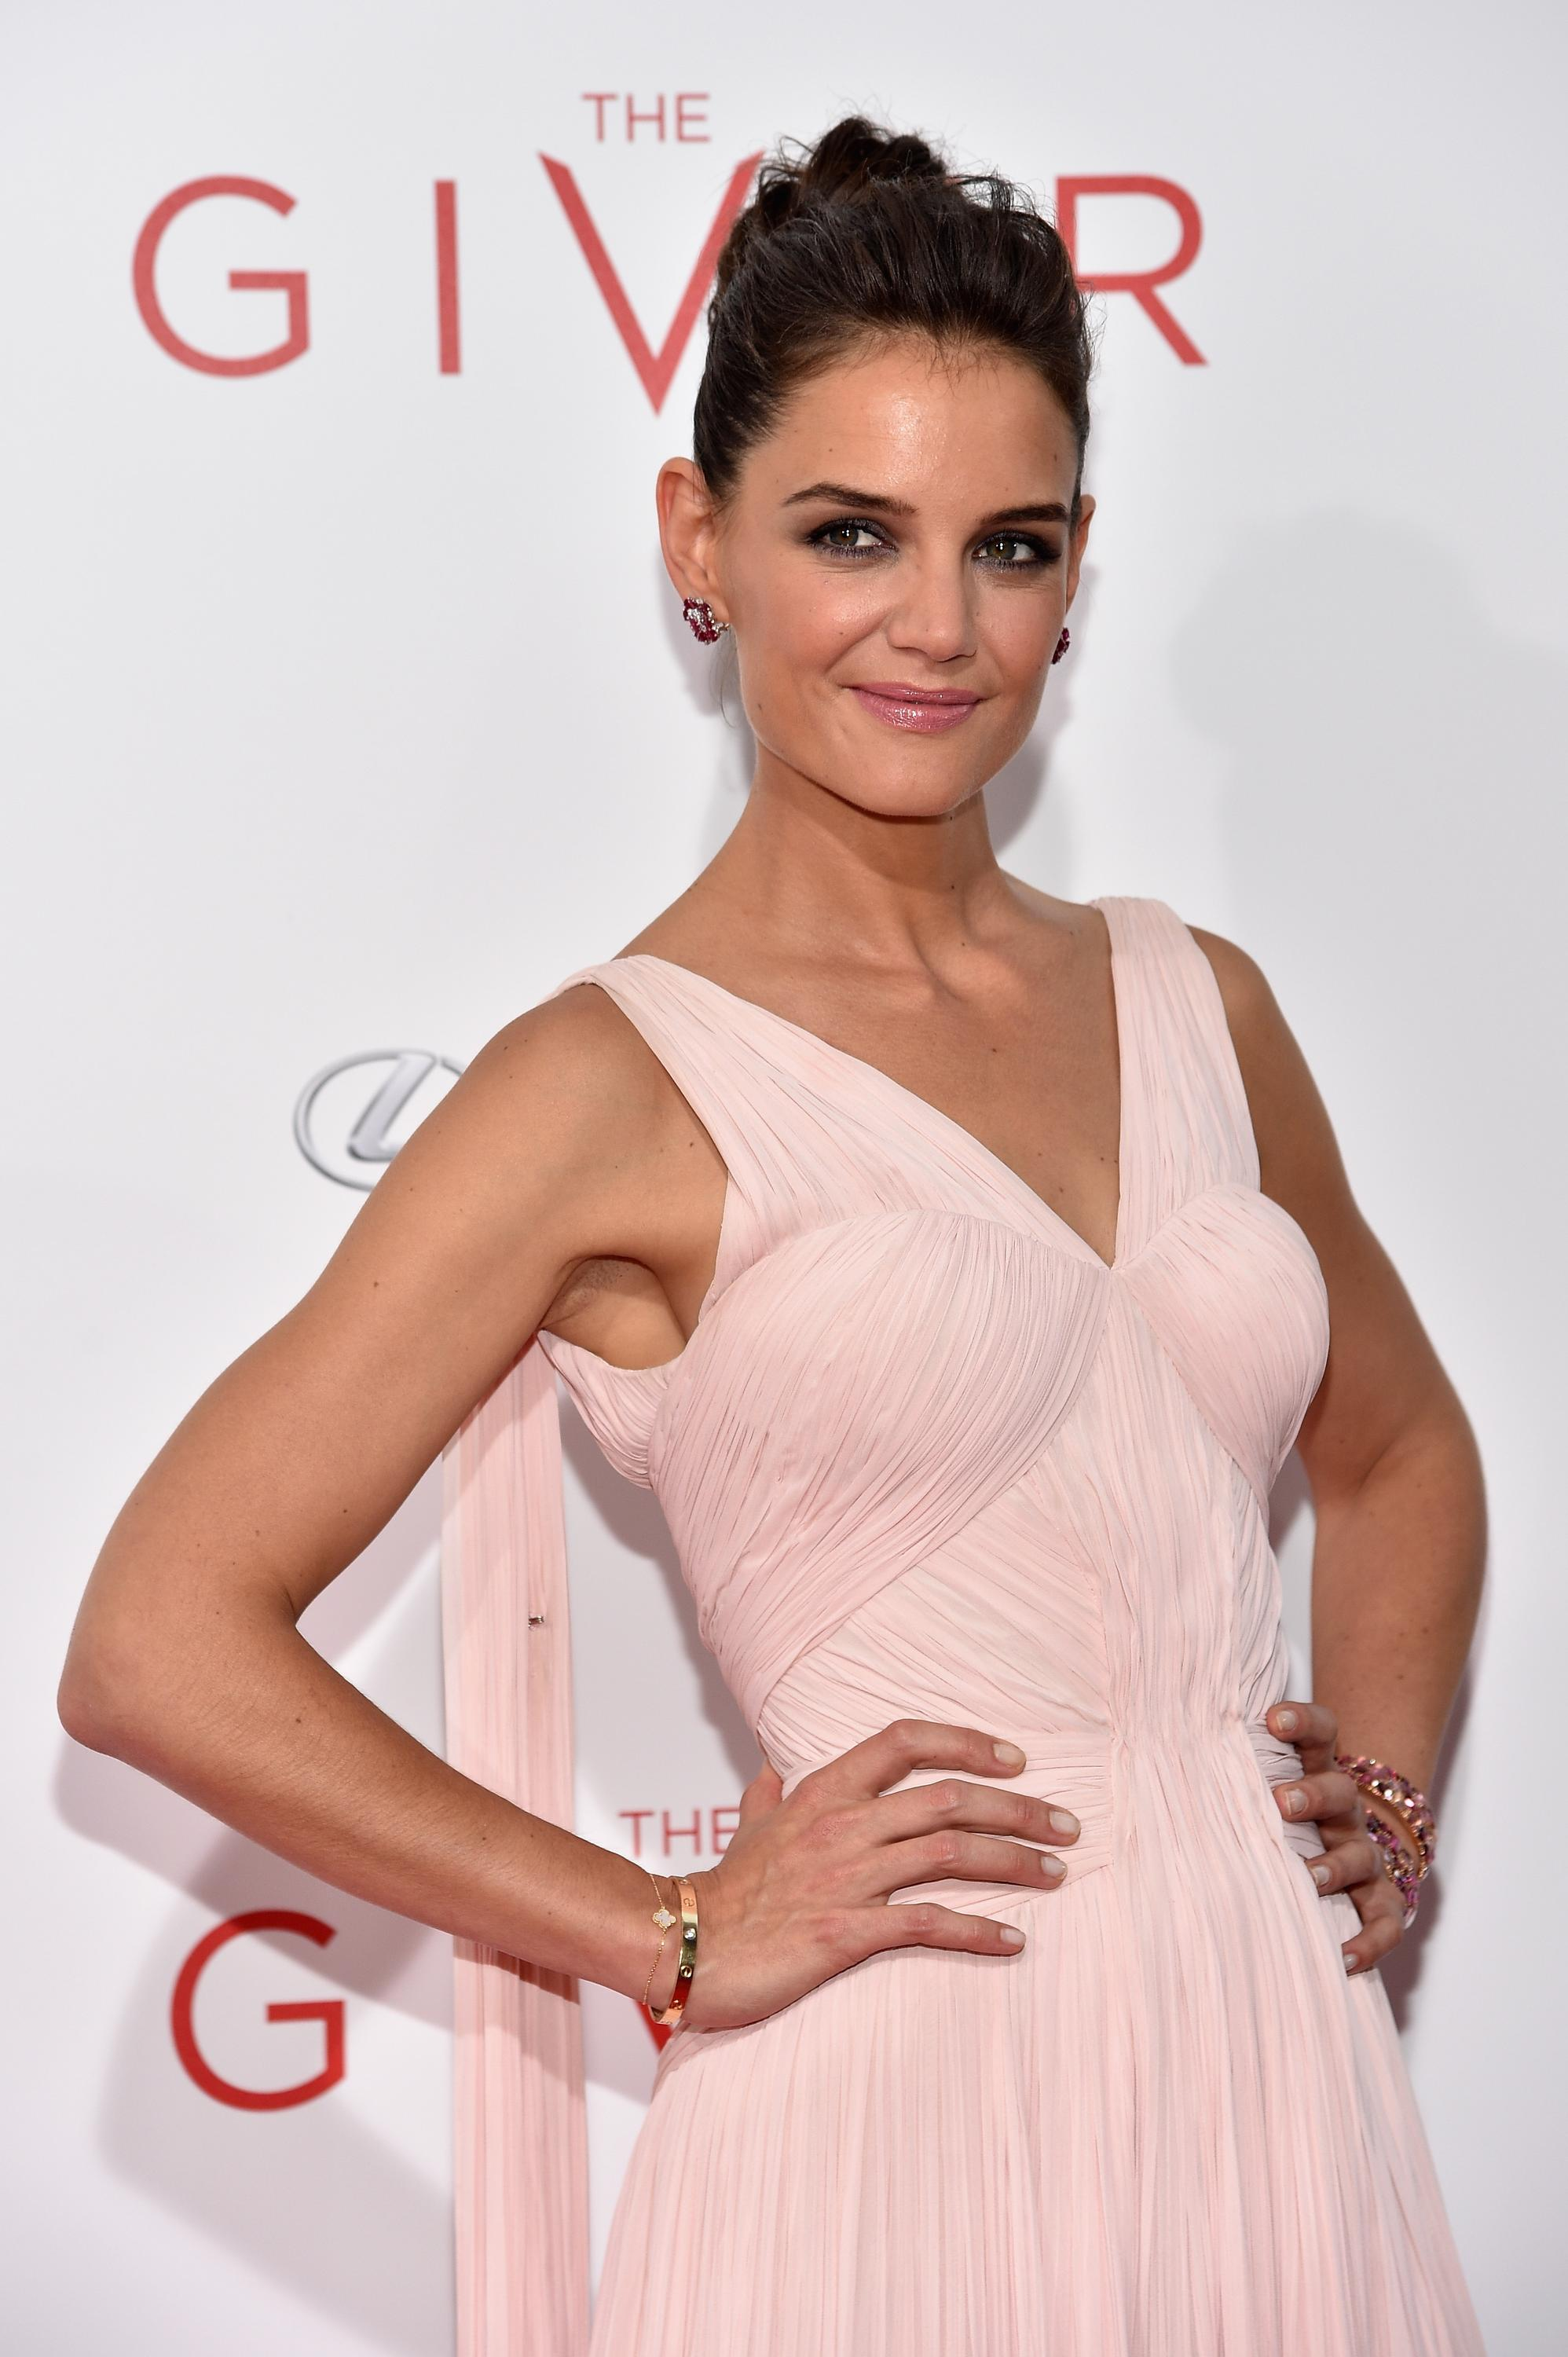 Katie Holmes attending  The Giver  New York City premiere August 11, 2014